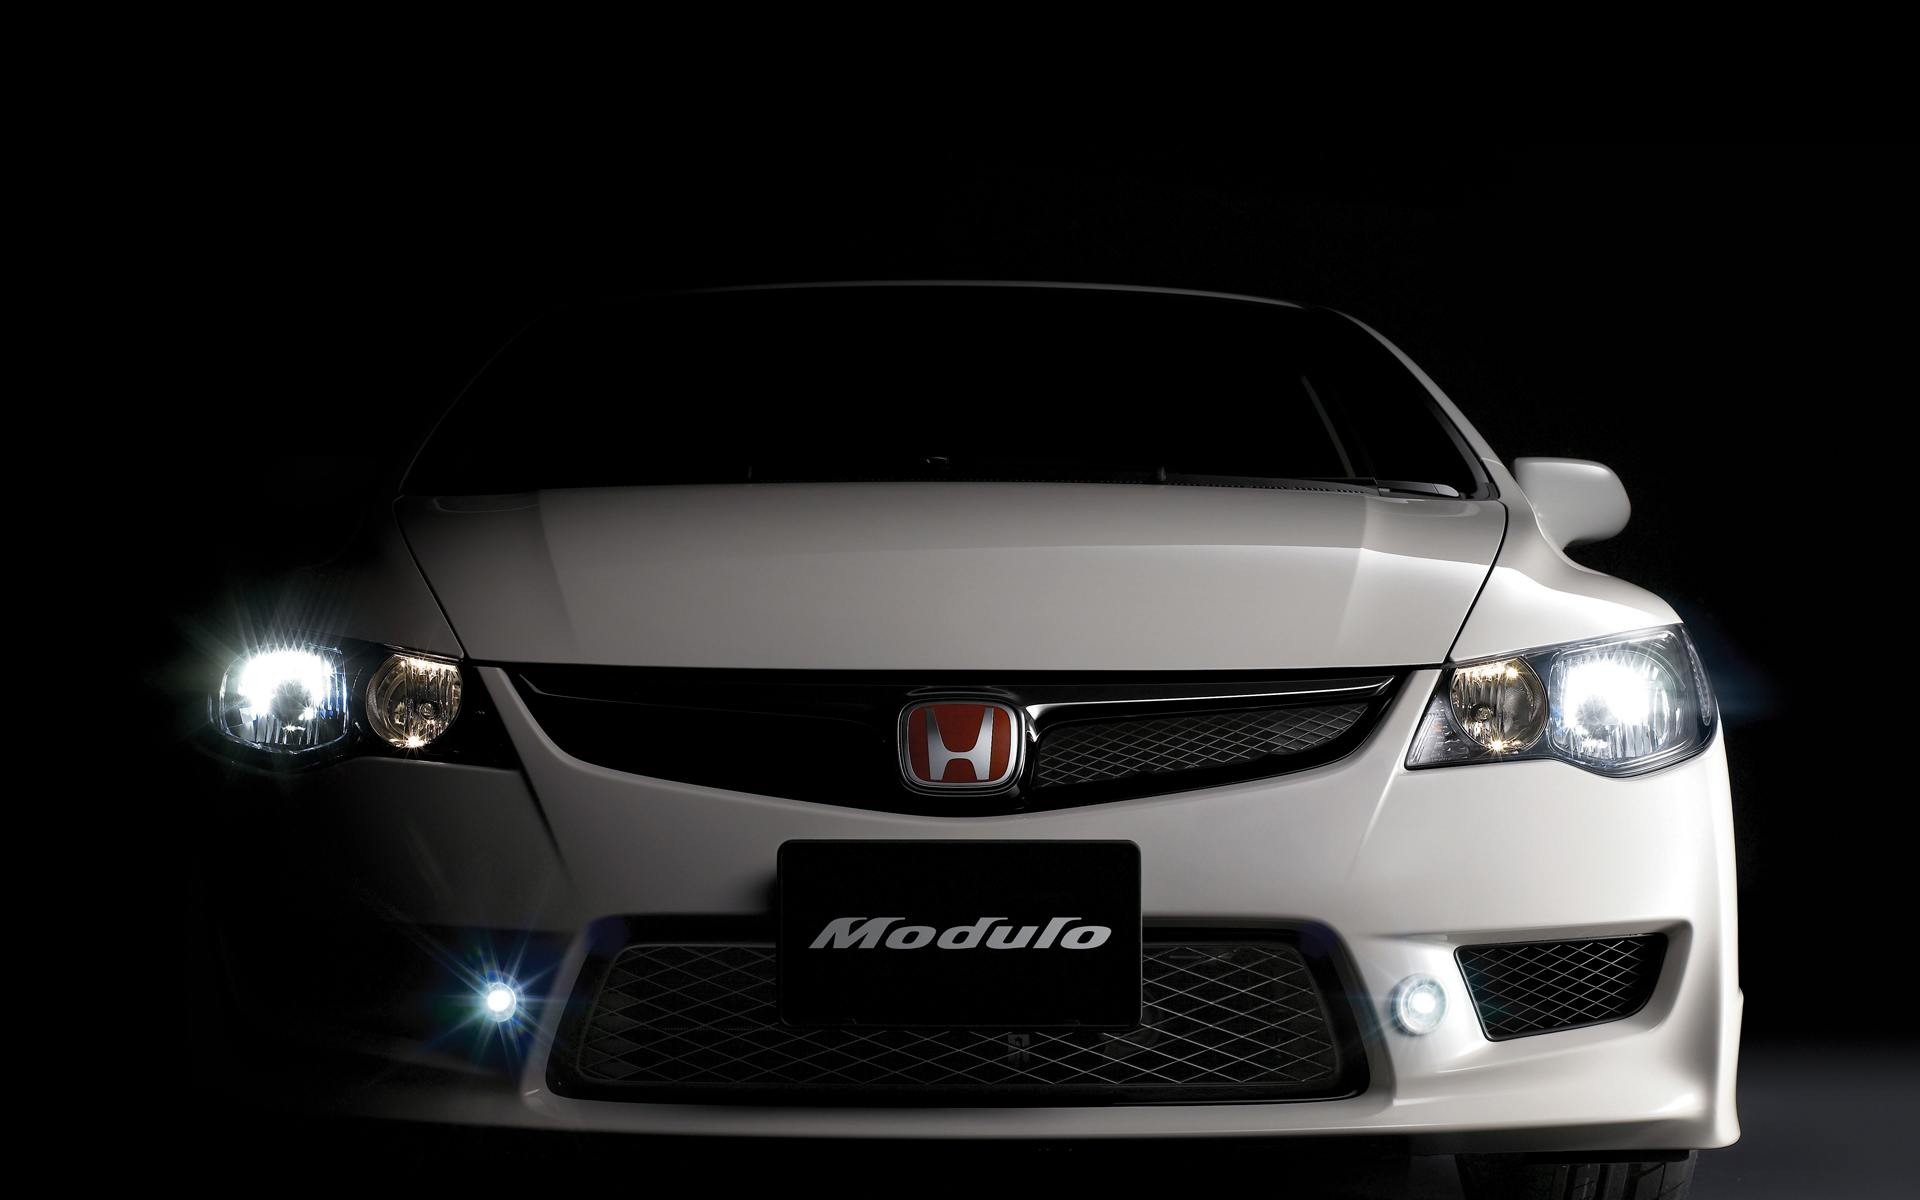 … honda civic wallpaper format wallpapersafari …